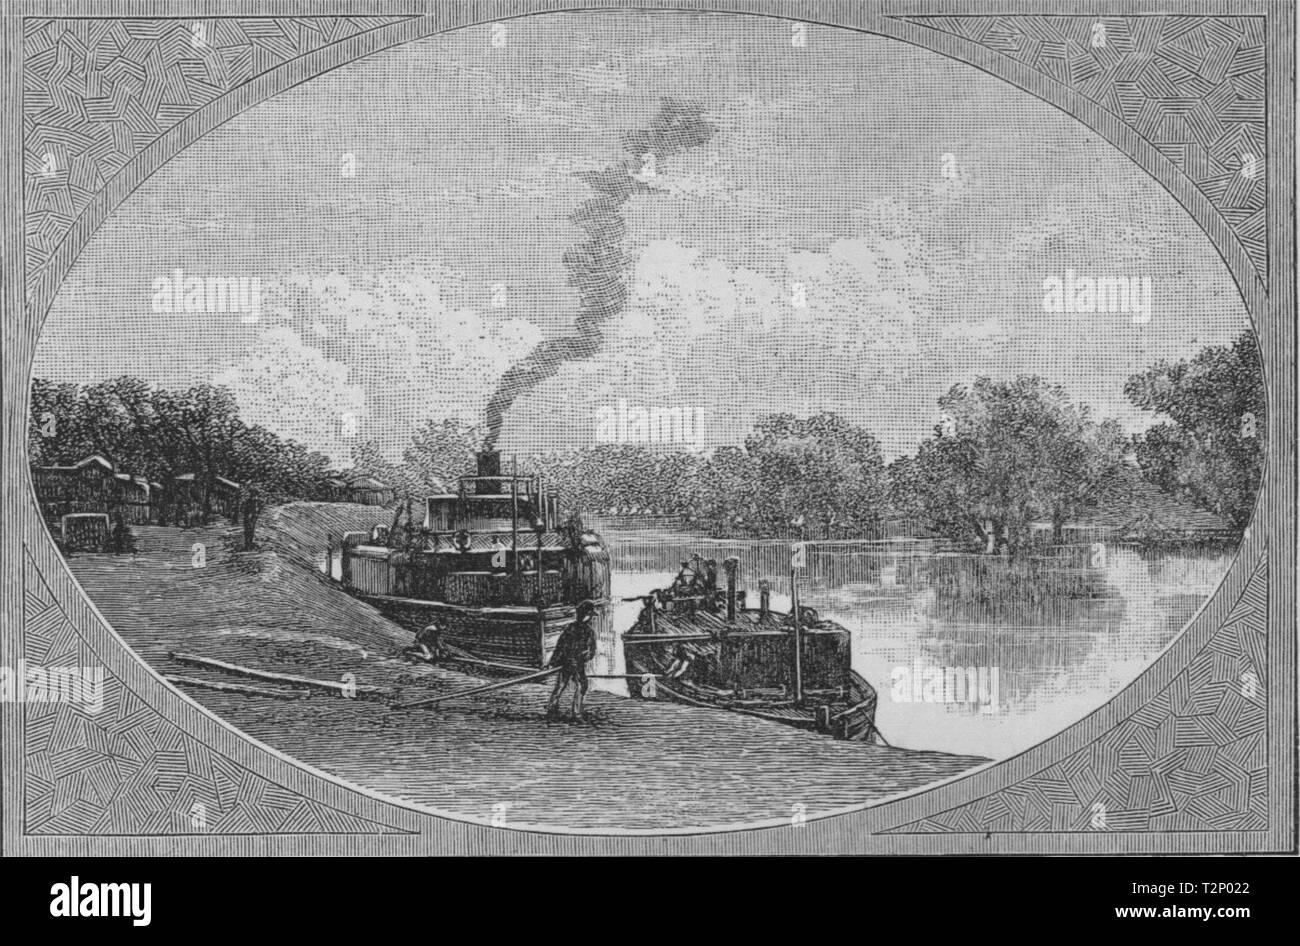 The River Darling at Bourke. The Murray river basin. Australia 1890 old print - Stock Image